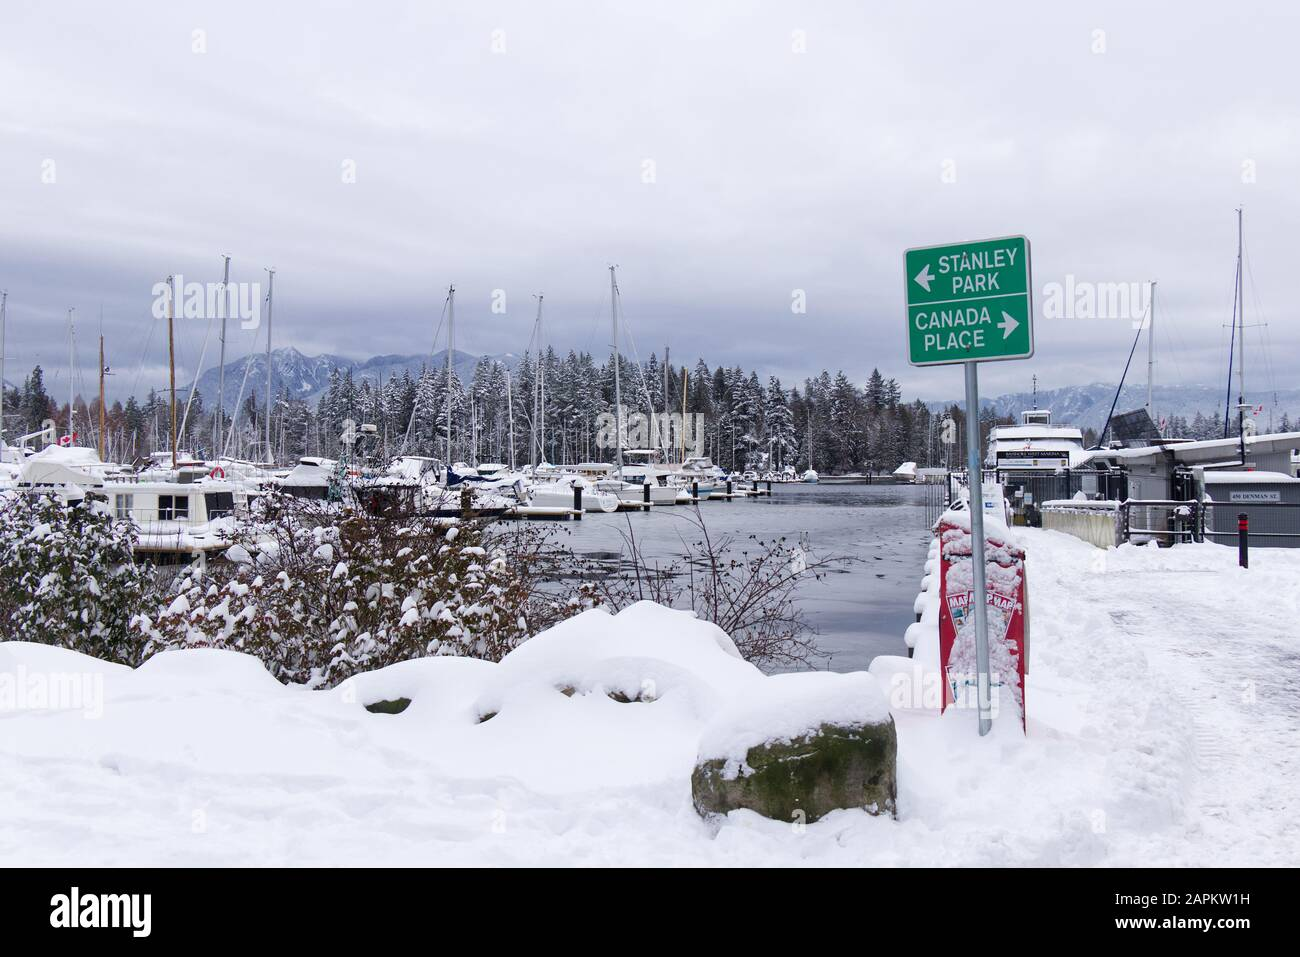 """Vancouver, Canada - January 15,2019: View of road signs """"Stanley Park"""" and """"Canada Place"""" in Coal Harbour with frozen dock in the background Stock Photo"""